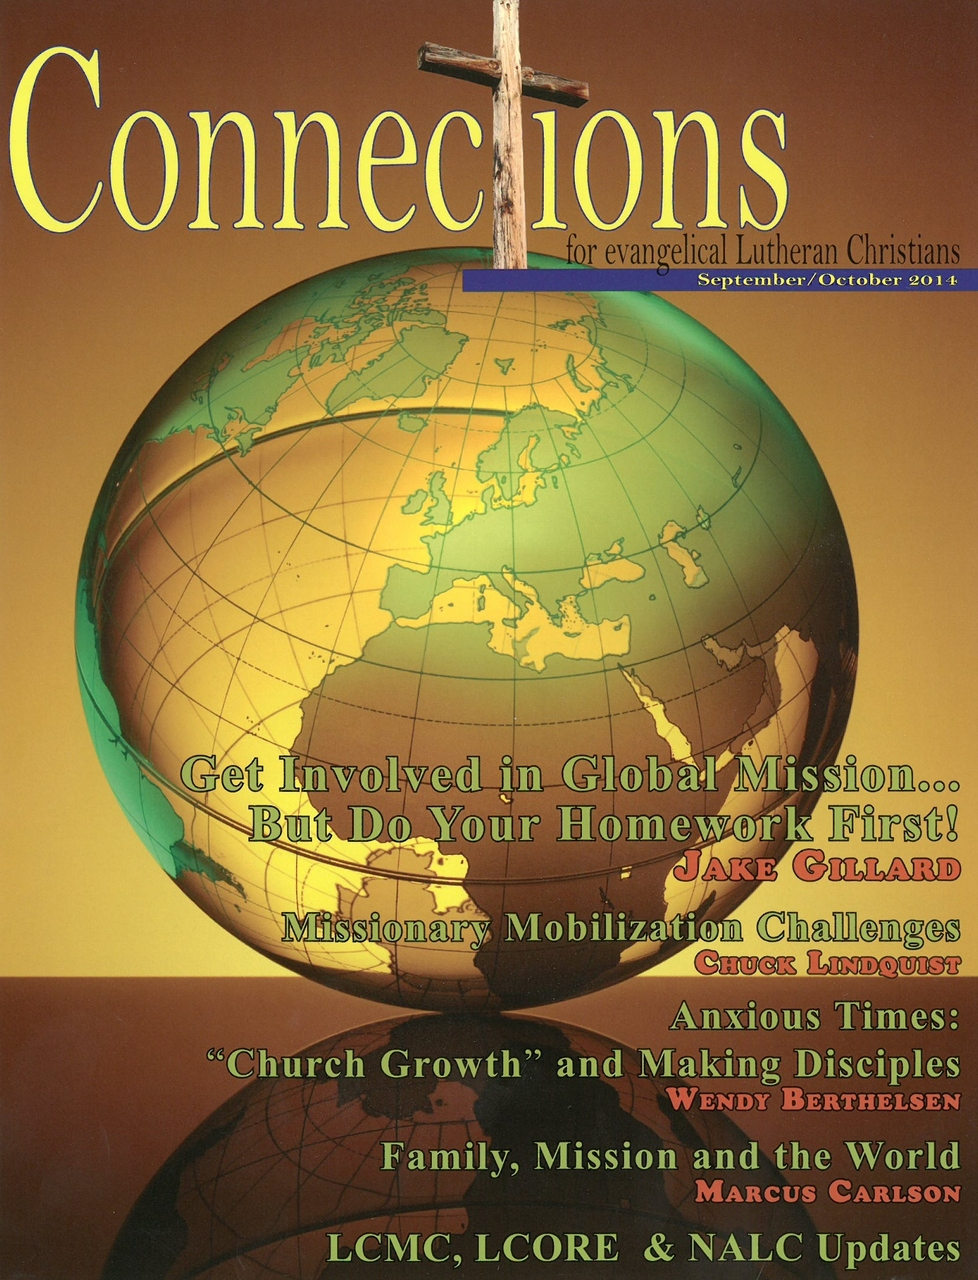 Connections Back Issue Sept/Oct '14 P-B145